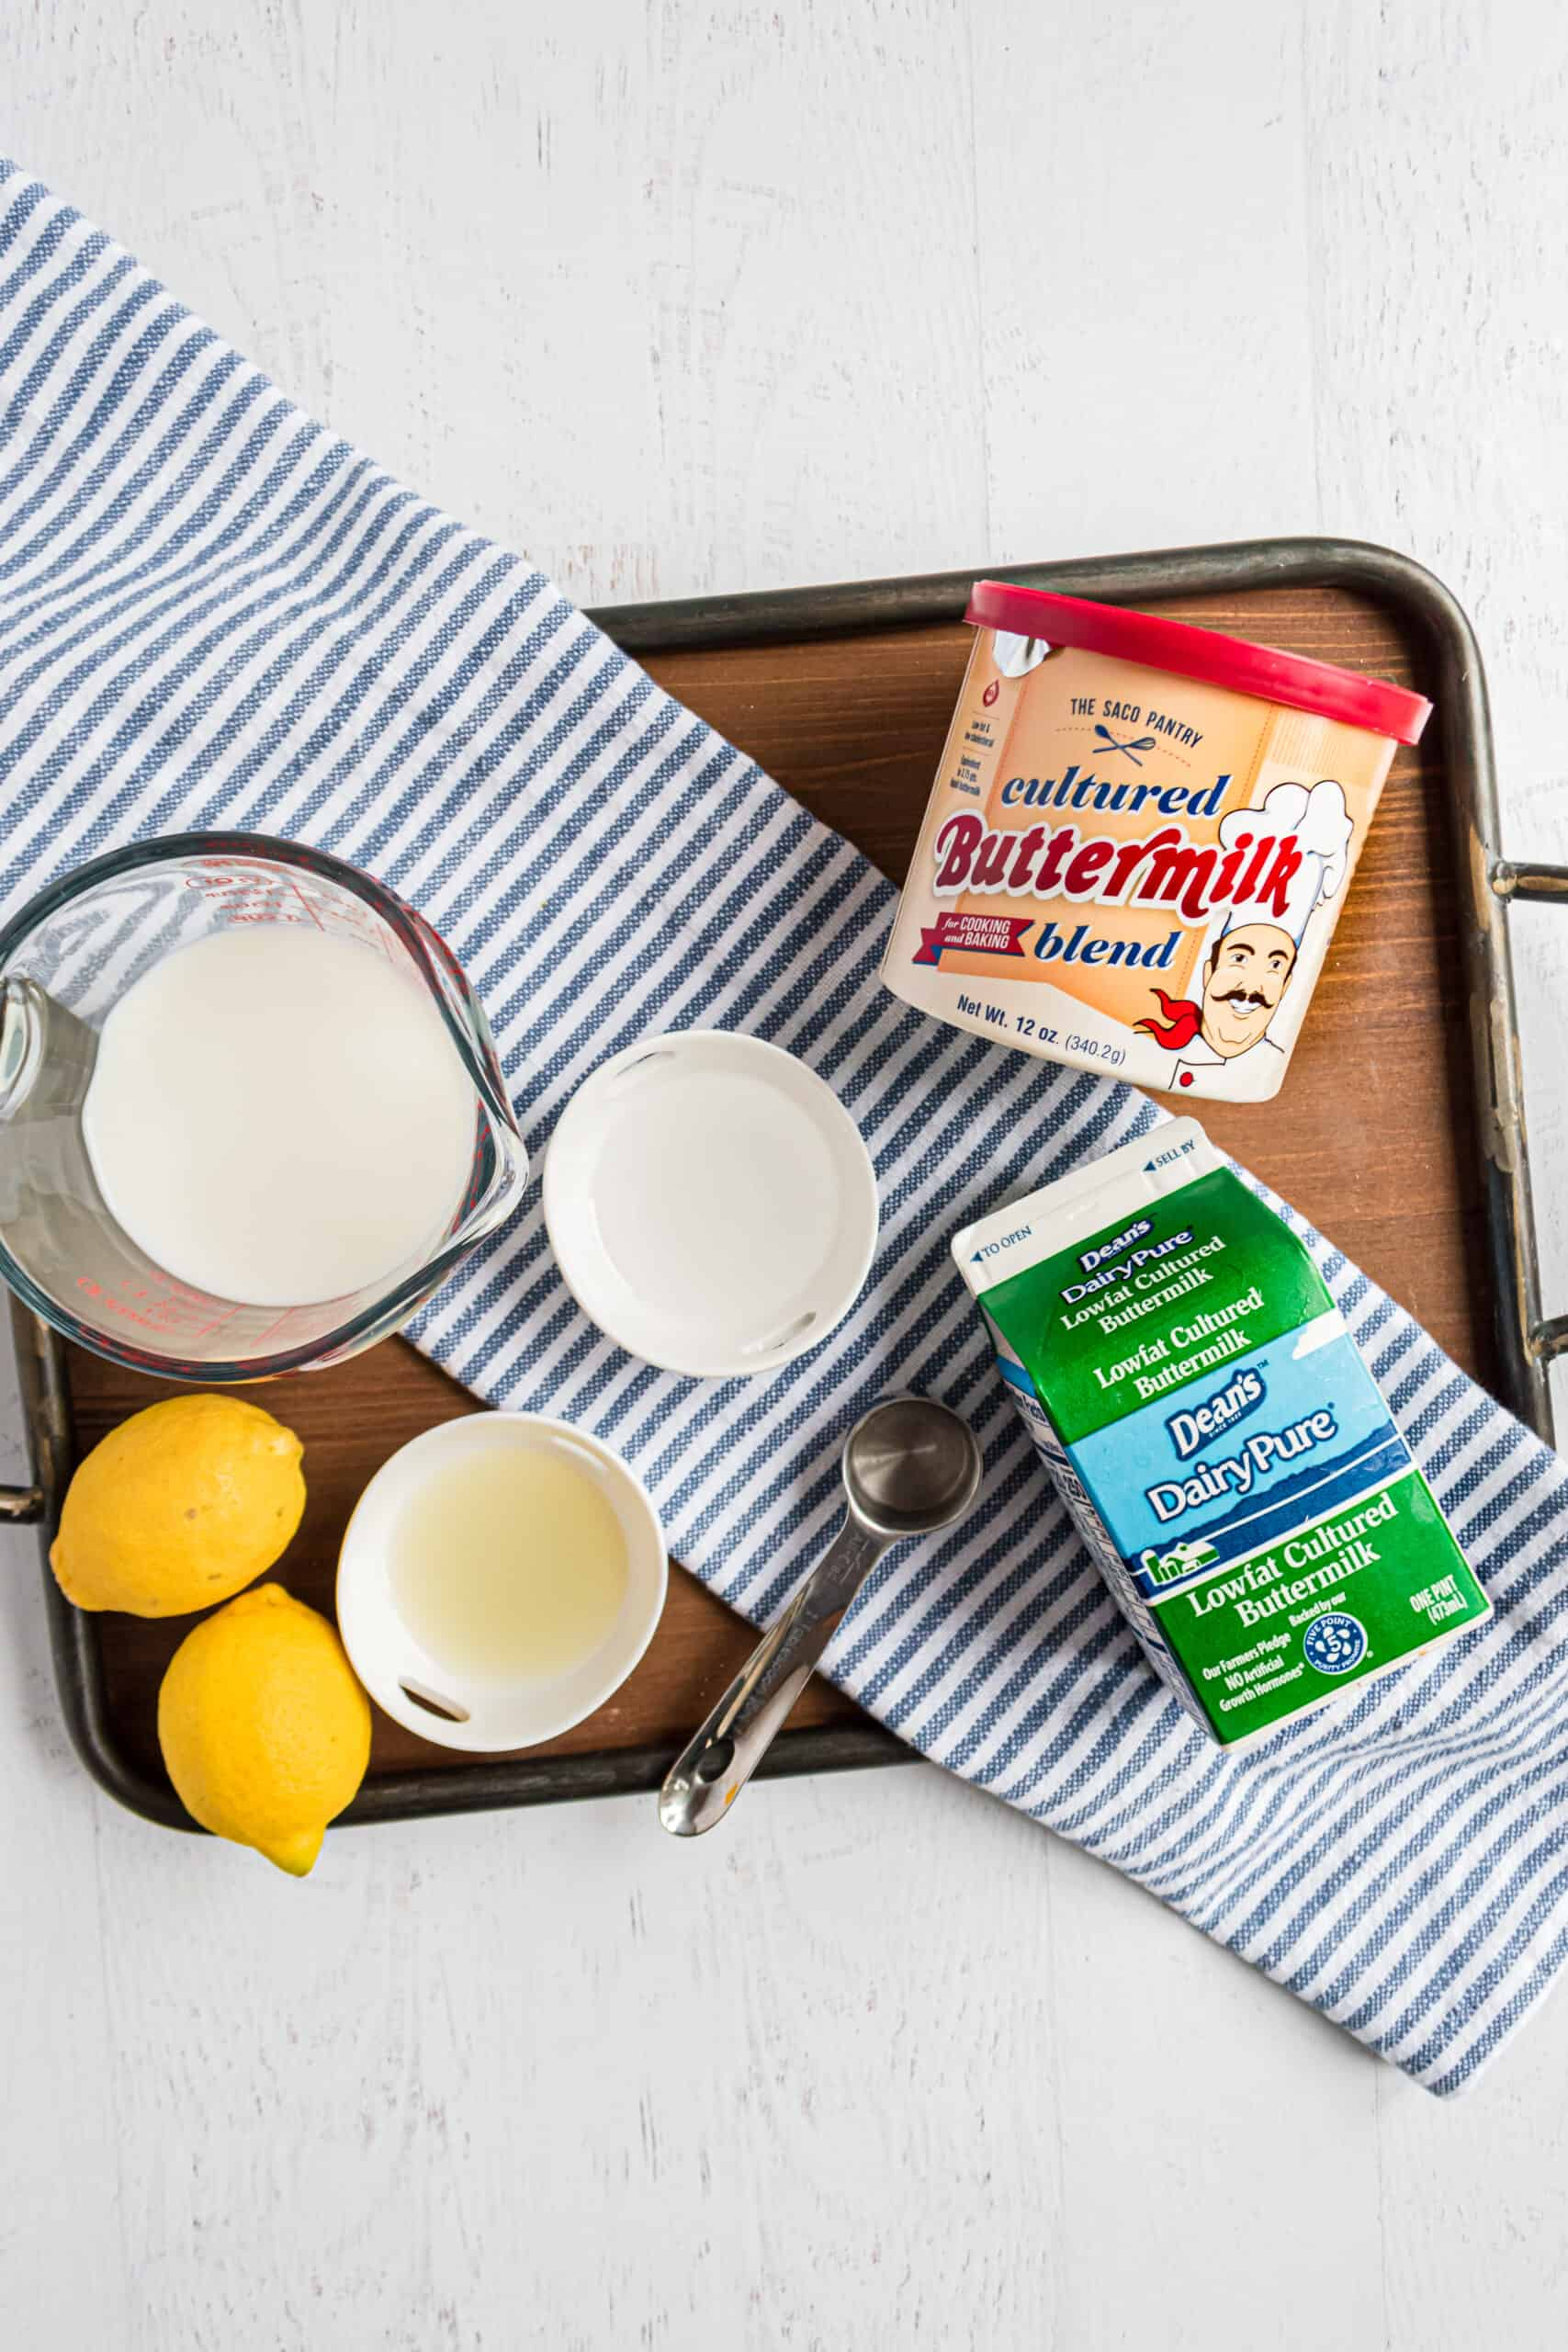 How to make homemade buttermilk ingredients.